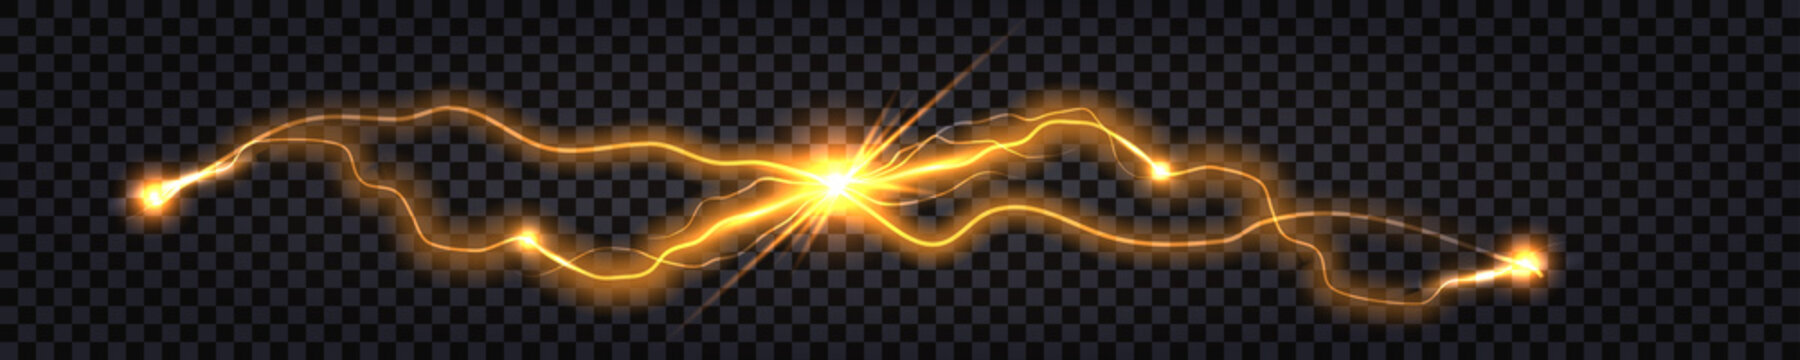 Electric discharge shock effect. Lightning collision, two vs impulse waves. Yellow light,  luminous thunder bolts, glowing flash sparkling electricity. Vector illustration